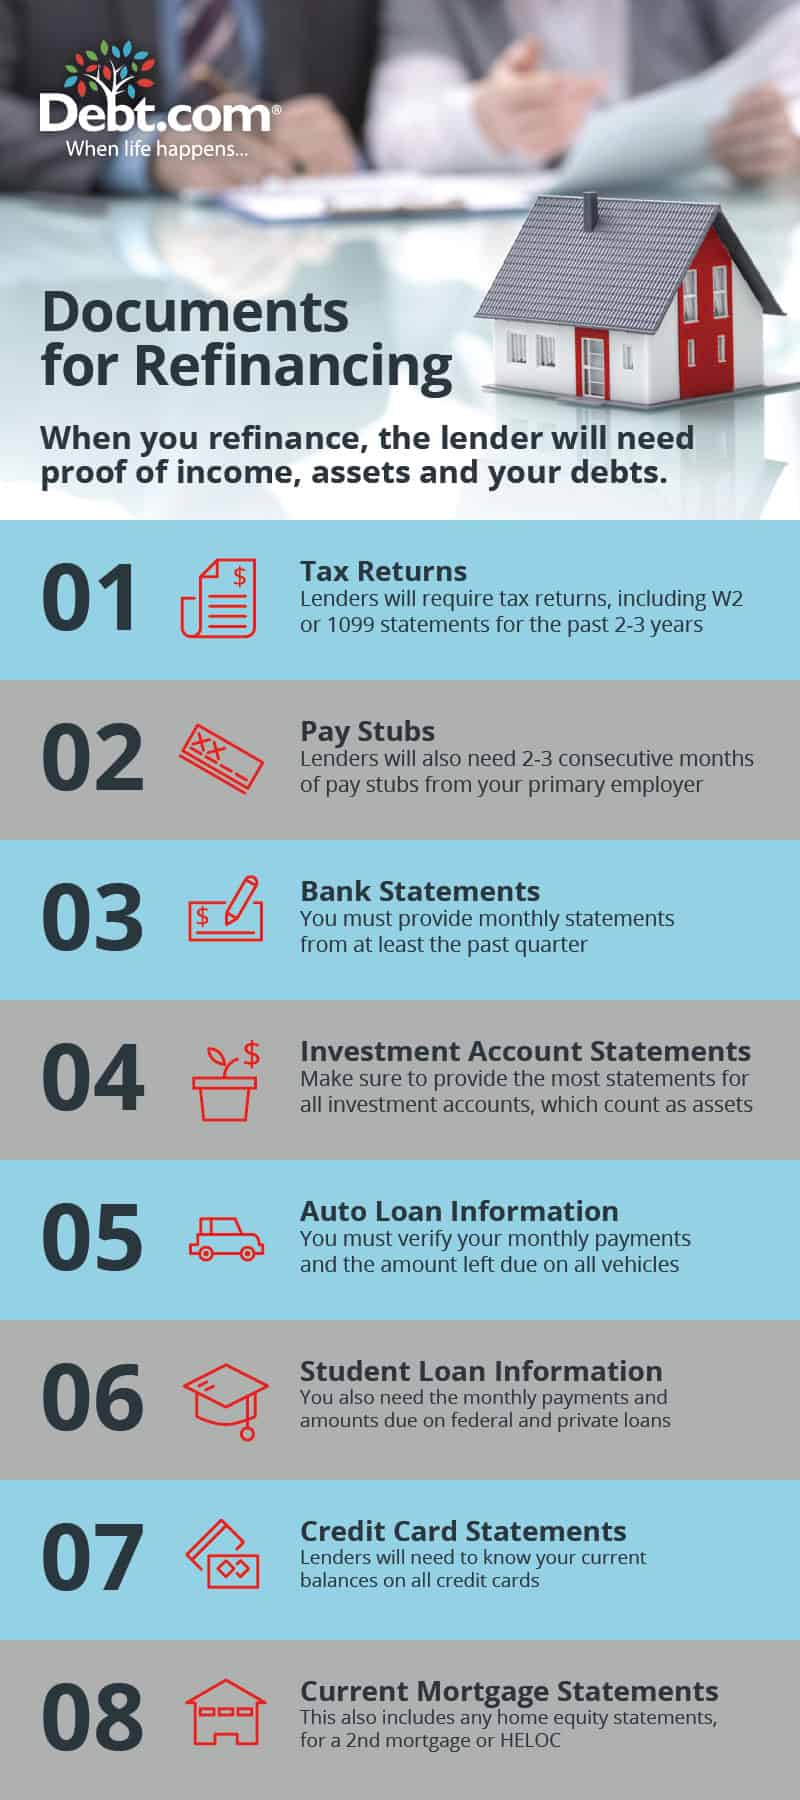 Should I refinance my mortgage? Documents for refinancing infographic